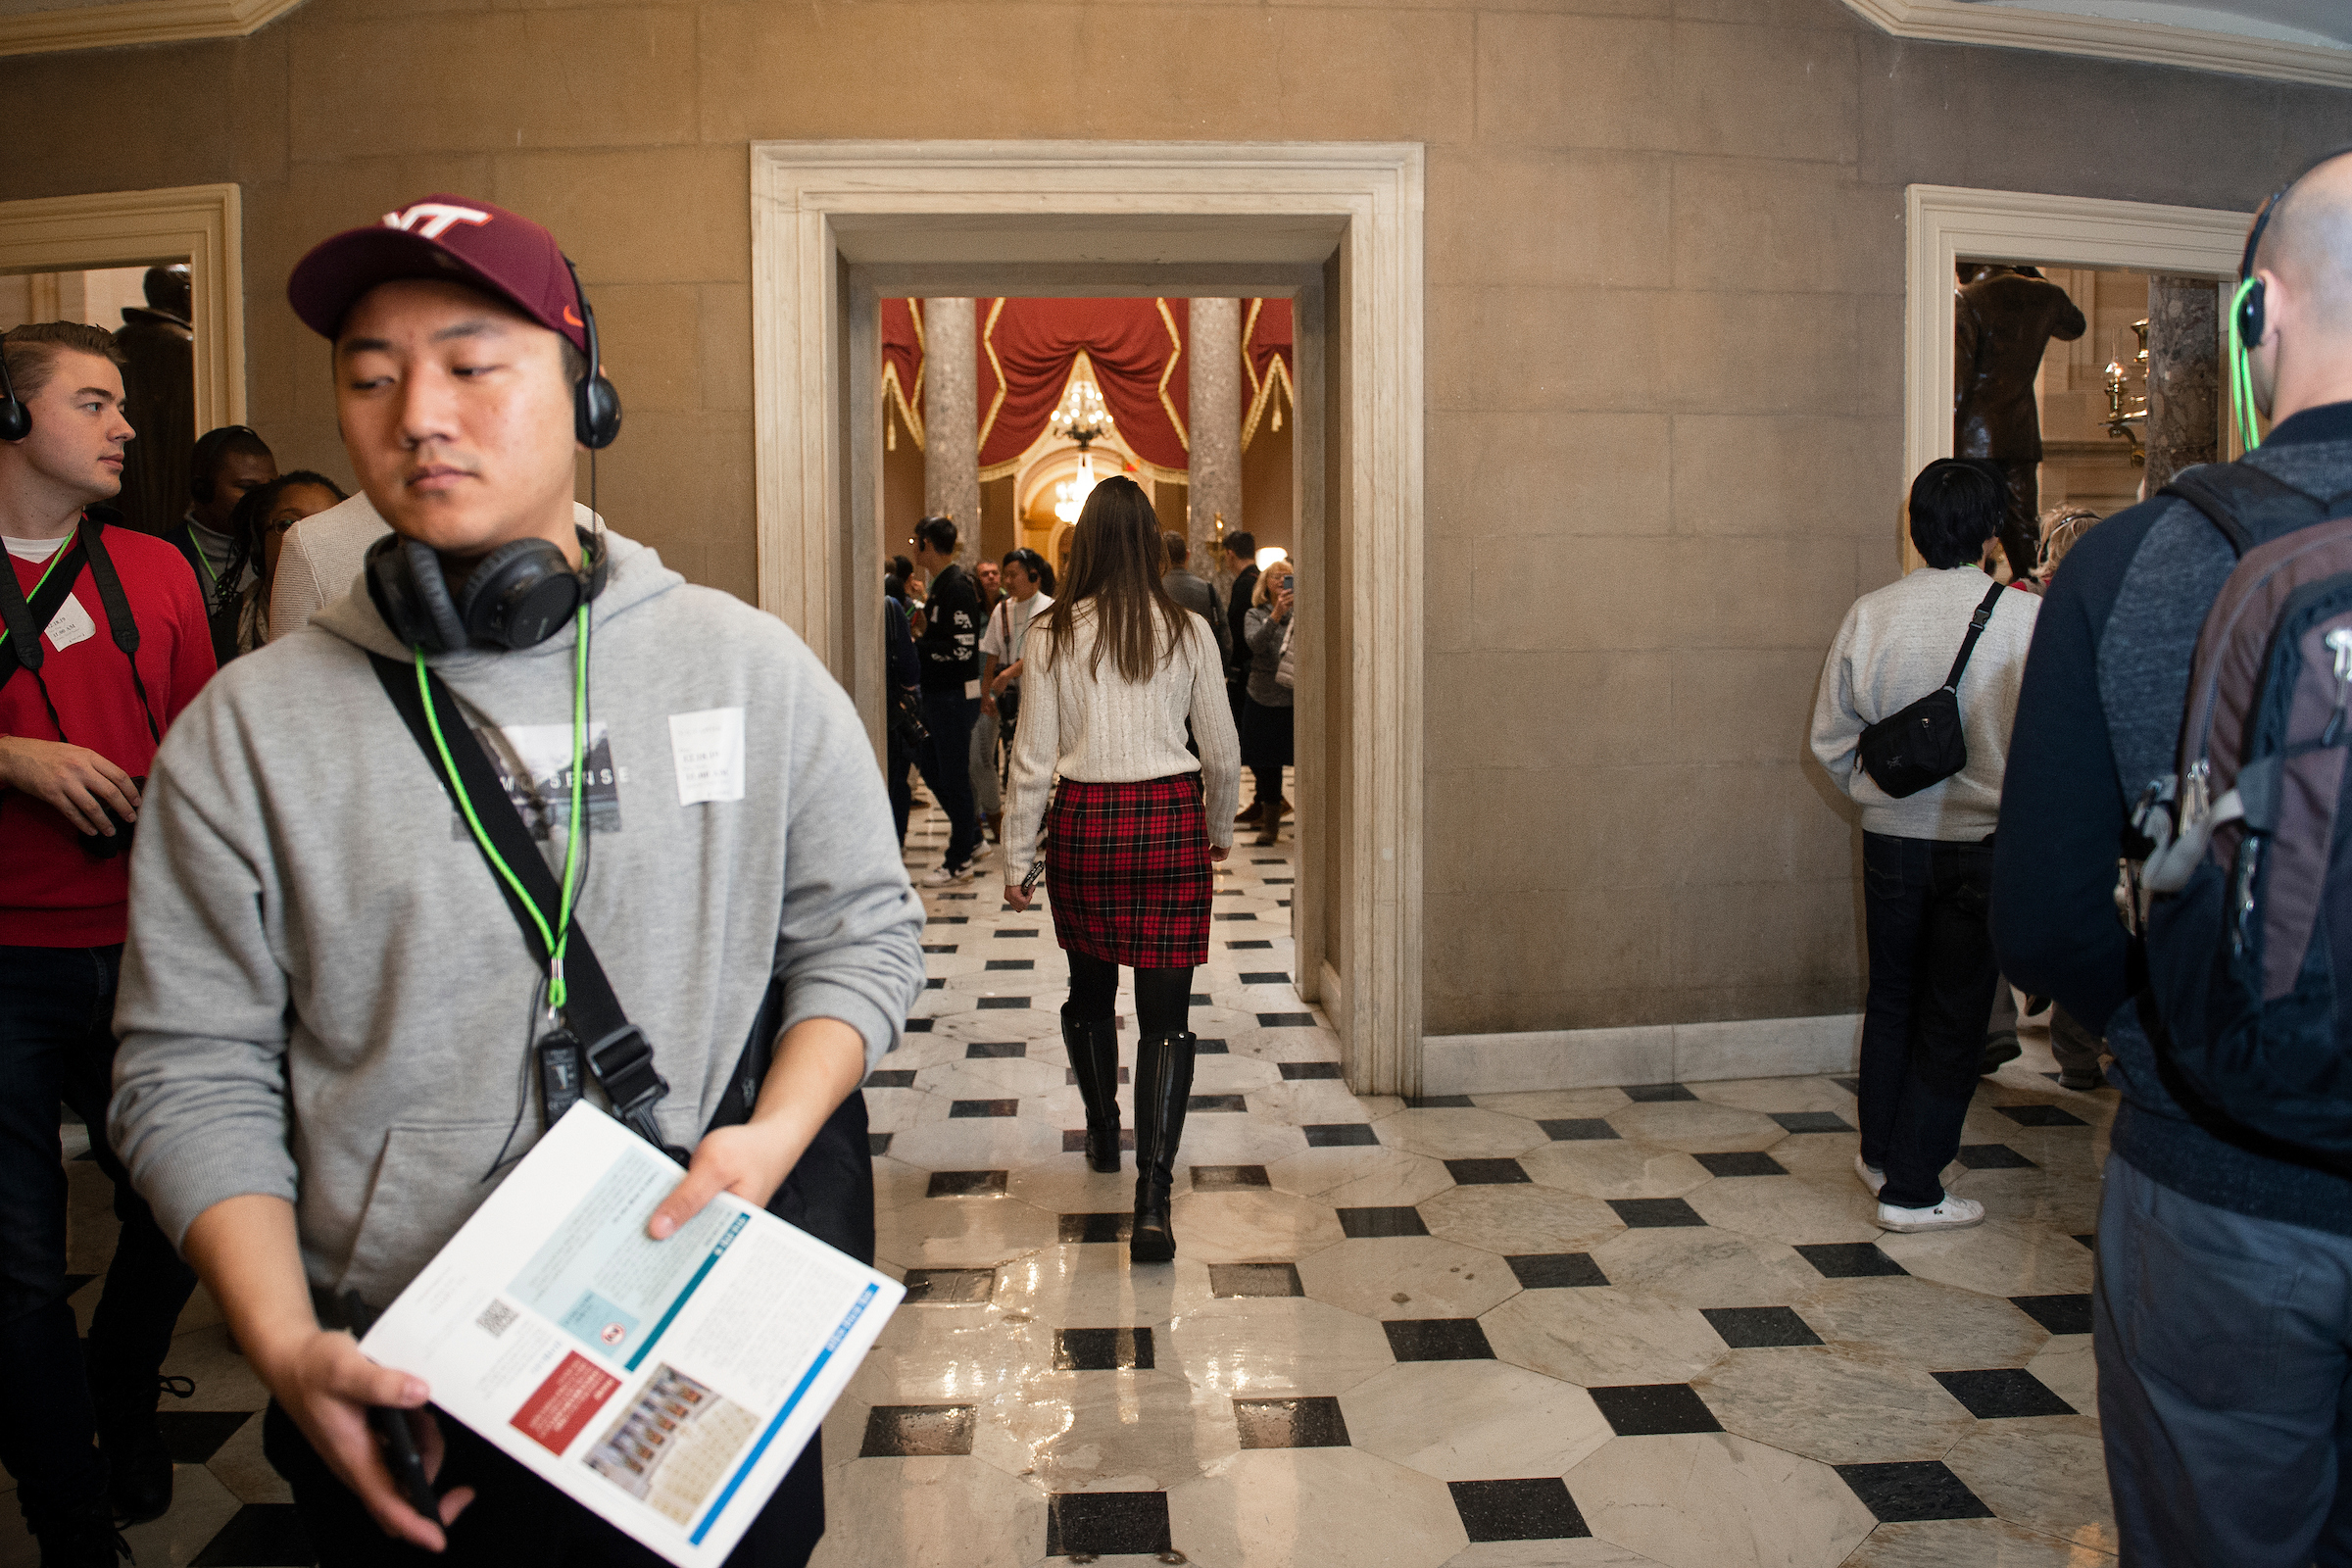 Tour groups fill the hallway outside of Statuary Hall on Wednesday. (Caroline Brehman/CQ Roll Call)